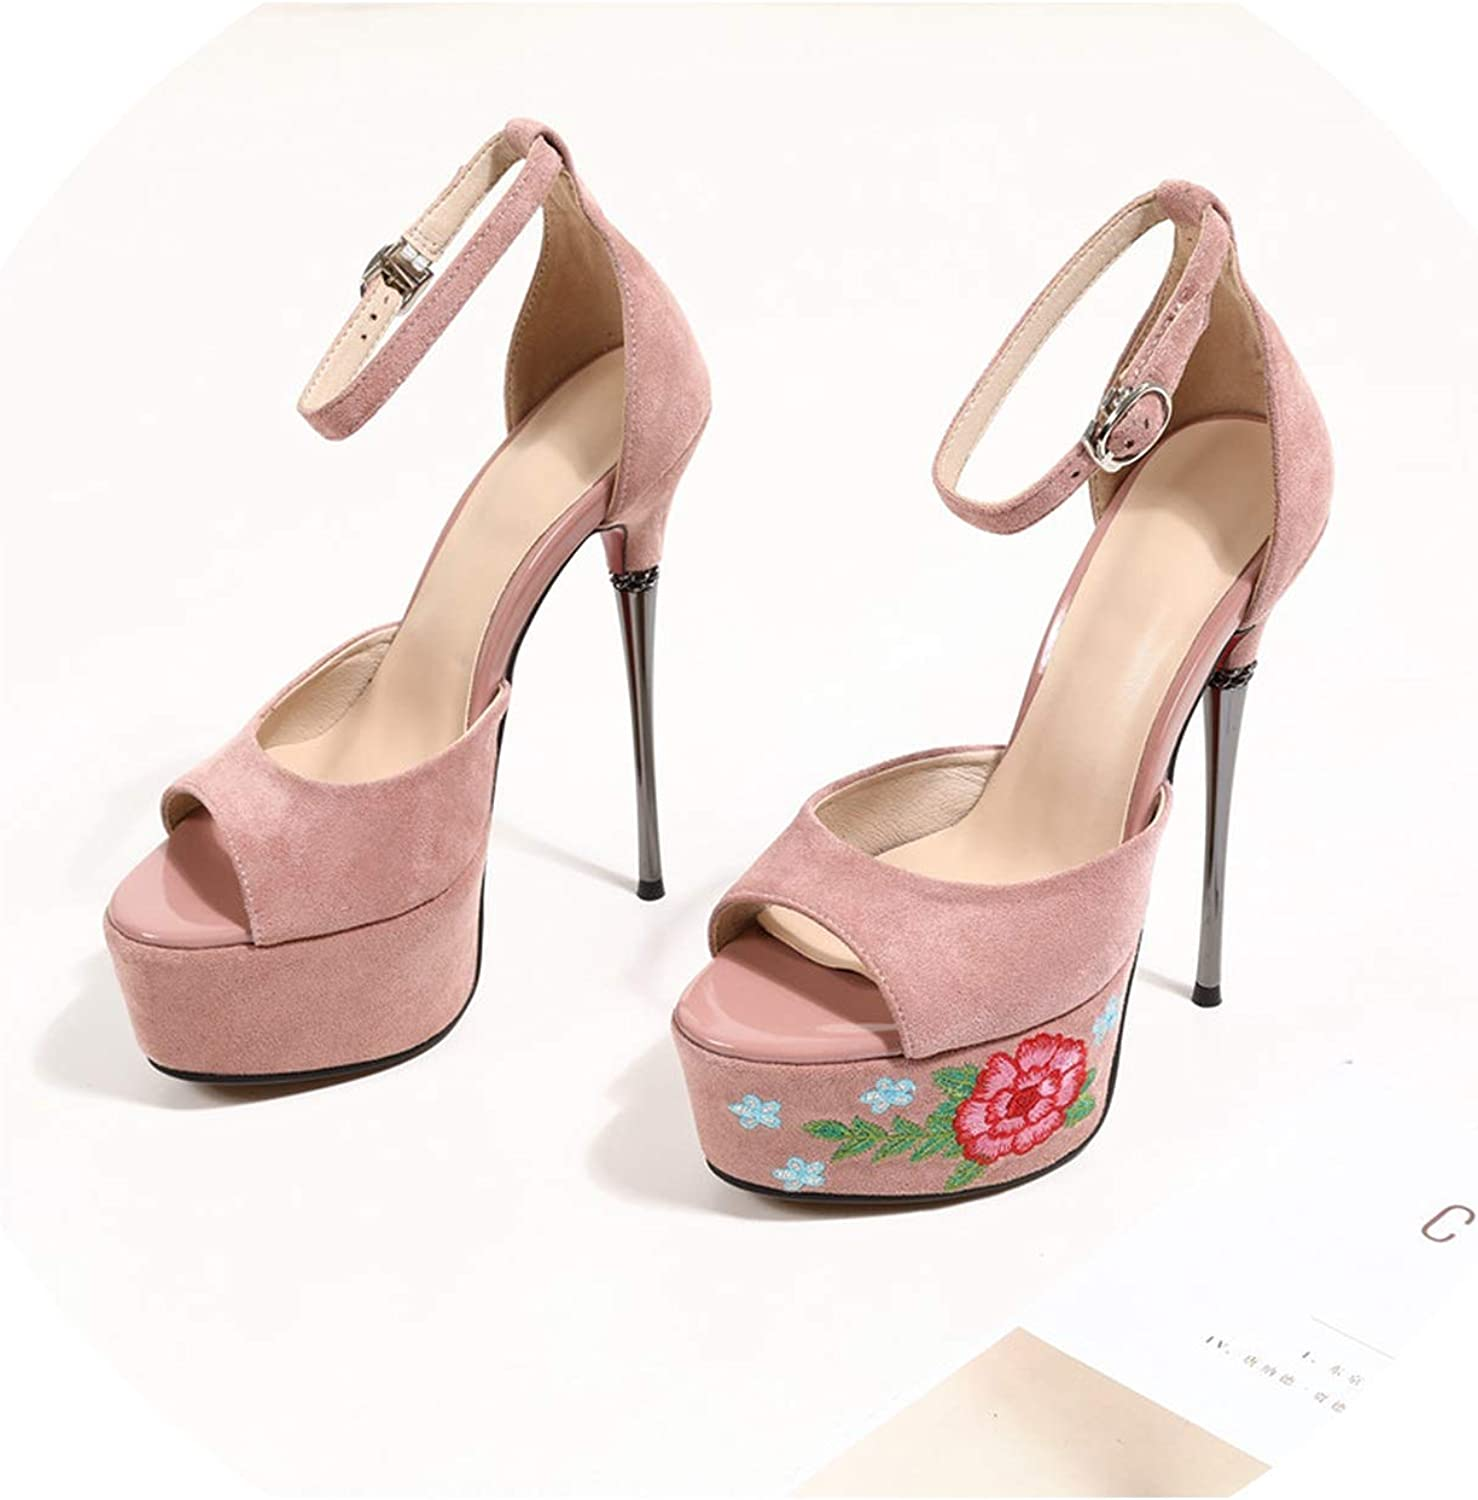 Lazy&Sexy-Heels Summer Sandals for Women Platform Ladies Prom Wedding shoes Buckle Suede Leather shoes Women Platform Sandals